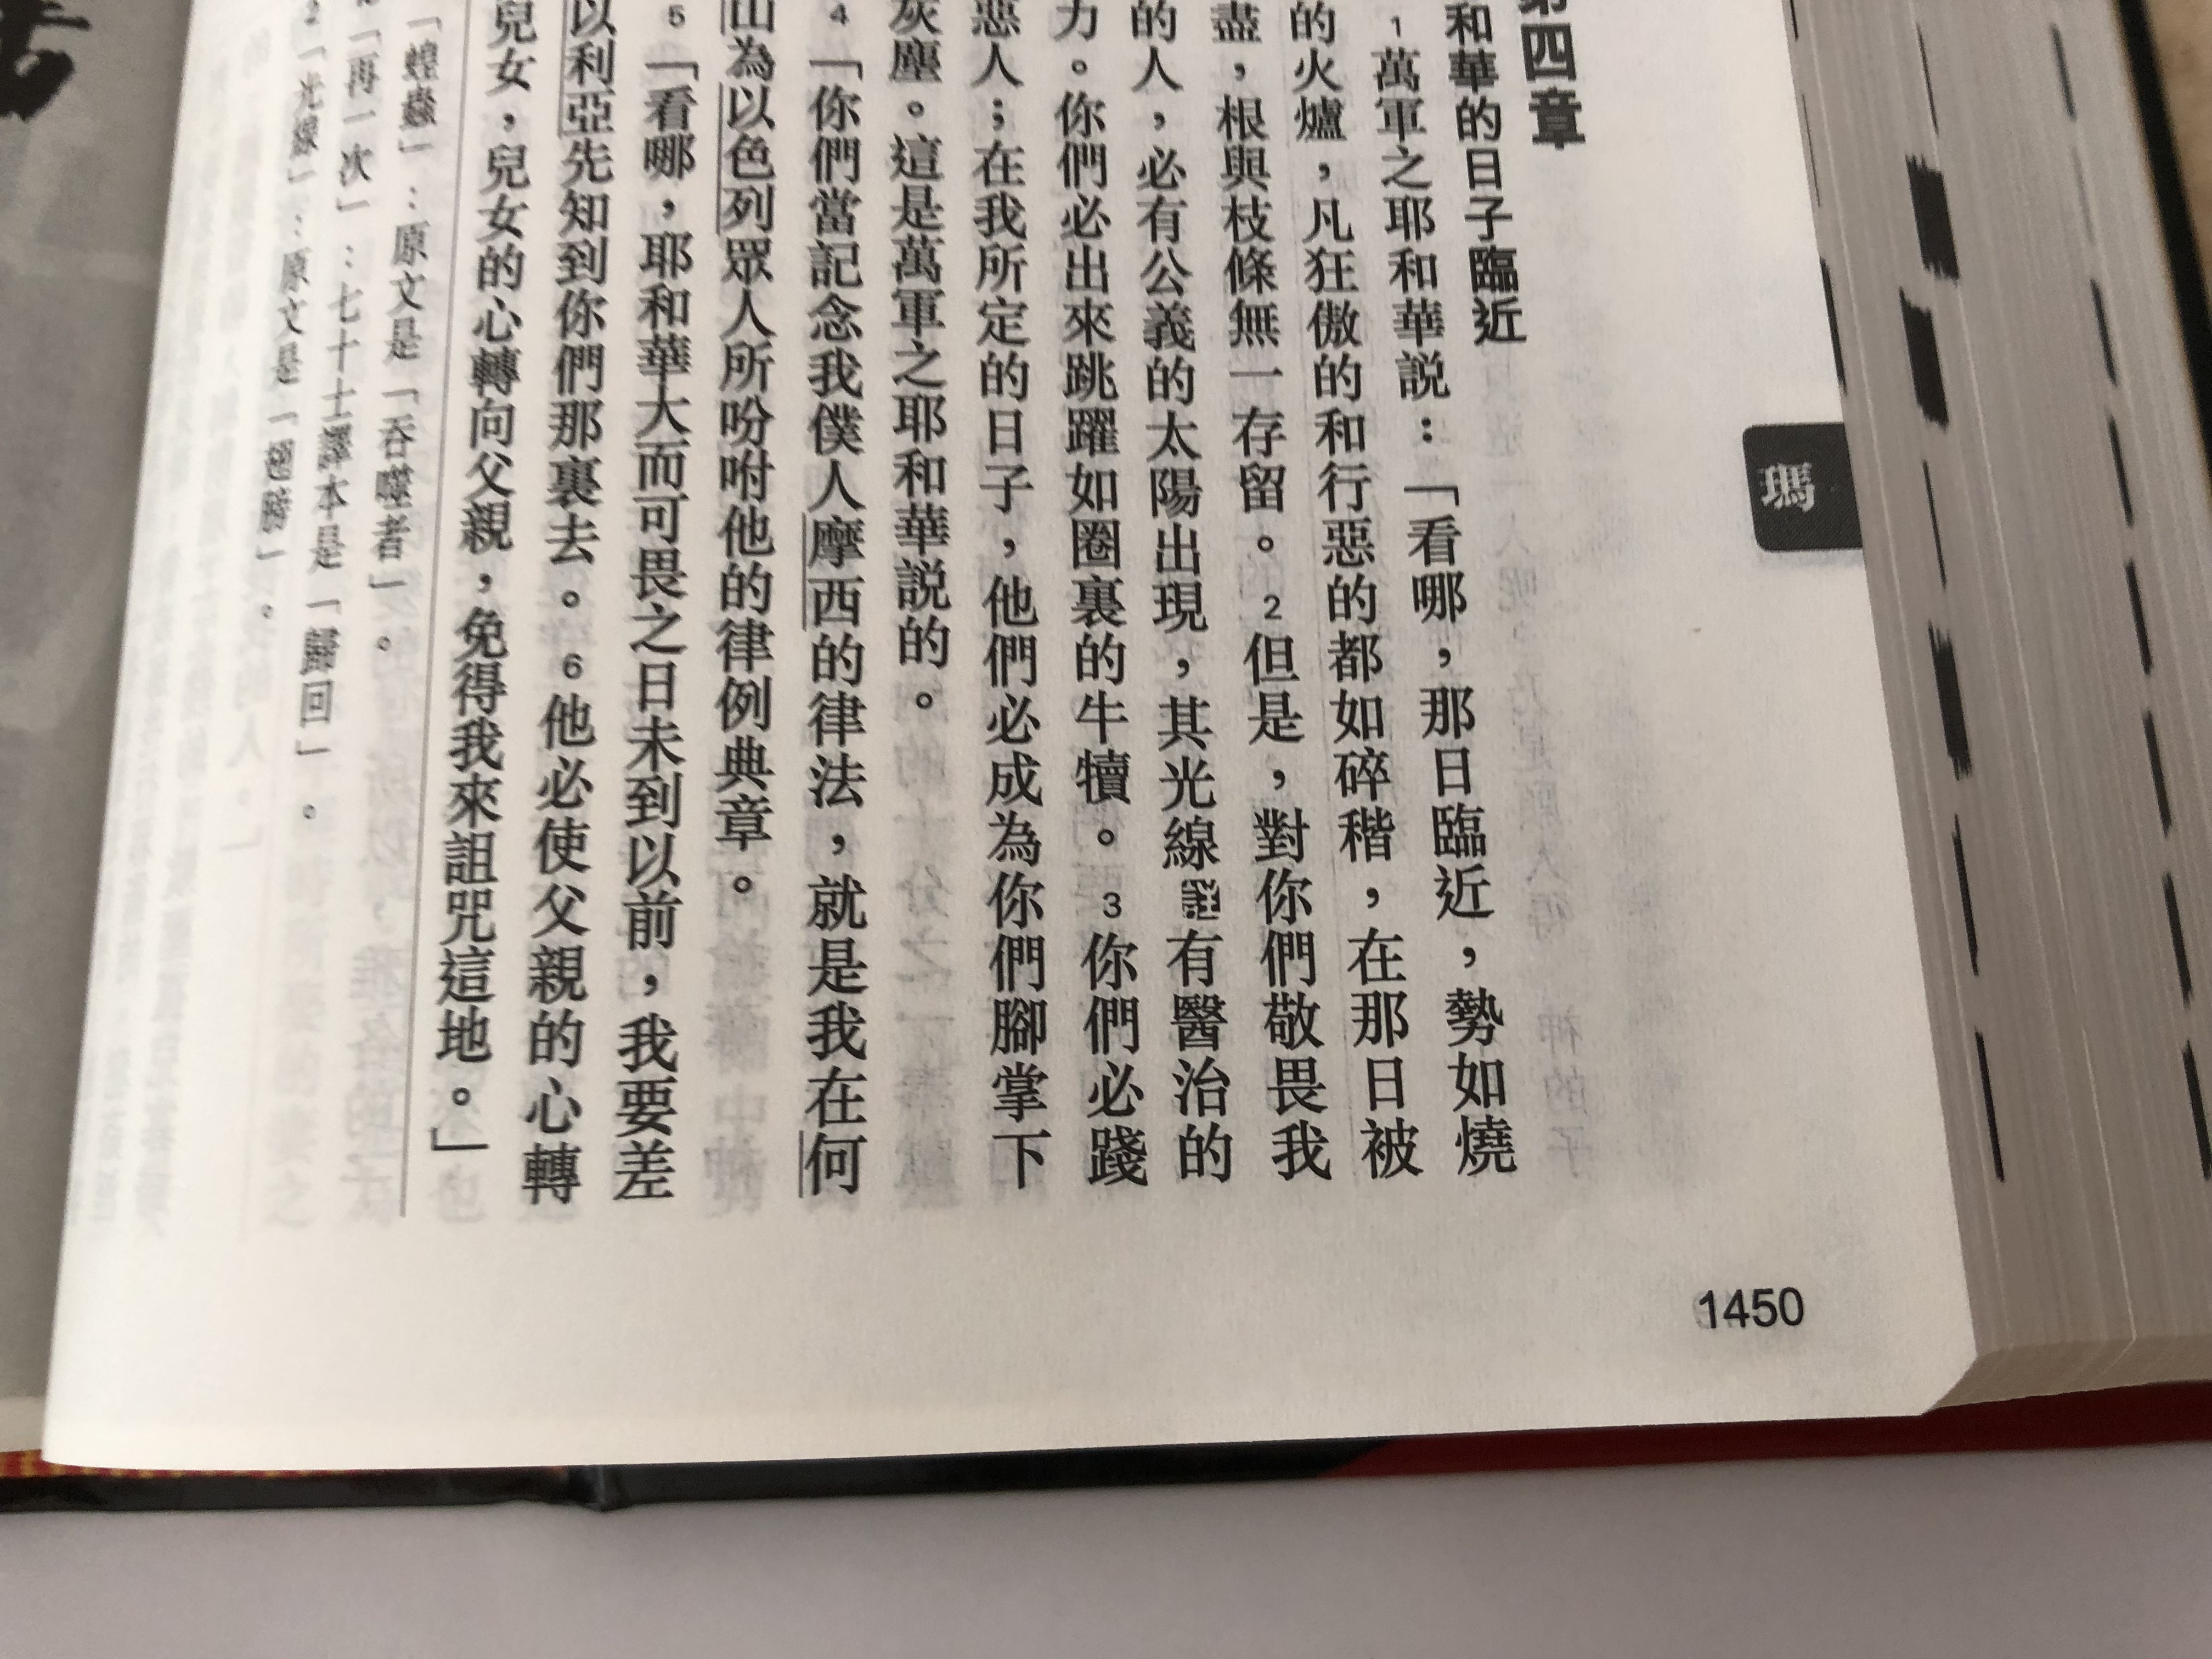 the-holy-bible-revised-chinese-union-version-shen-edition-black-red-hardcover-rcu63abk-hkbs-2011-12-.jpg